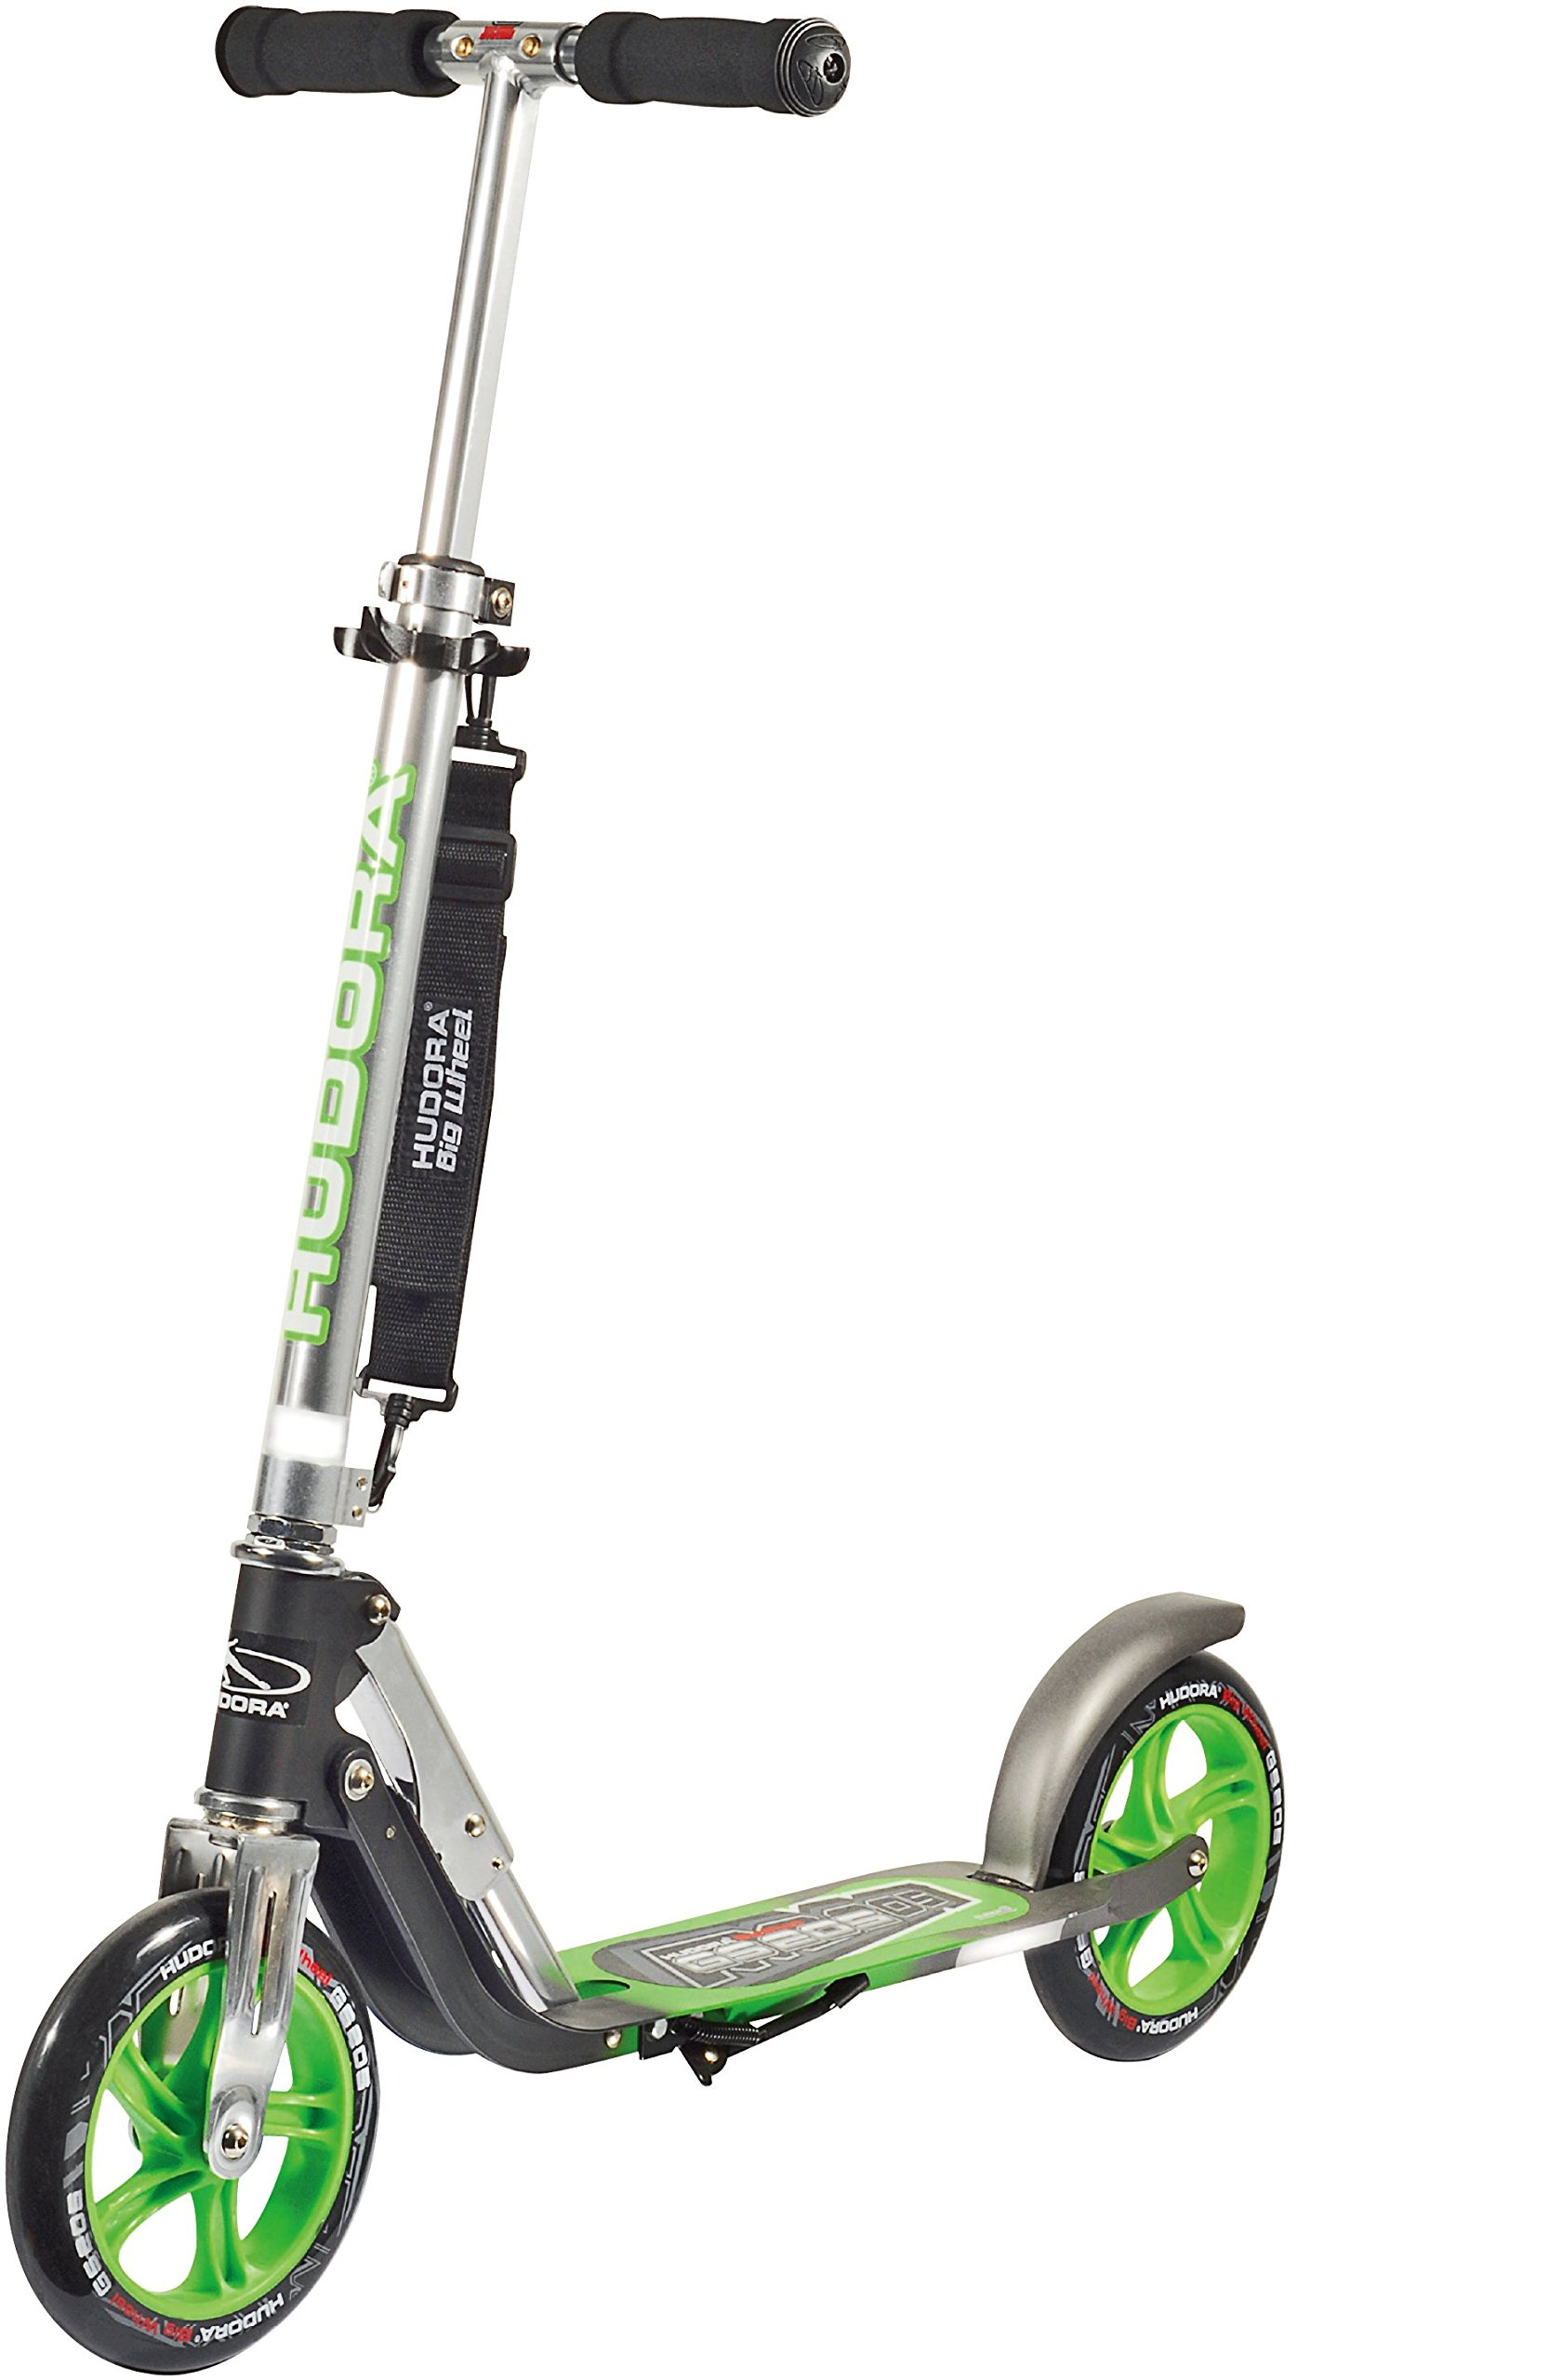 HUDORA 14695 Kick Scooters for Adults & Children Aged 10+, 2 Big PU Wheels 205 mm, Easily Fold & Carry by HUDORA